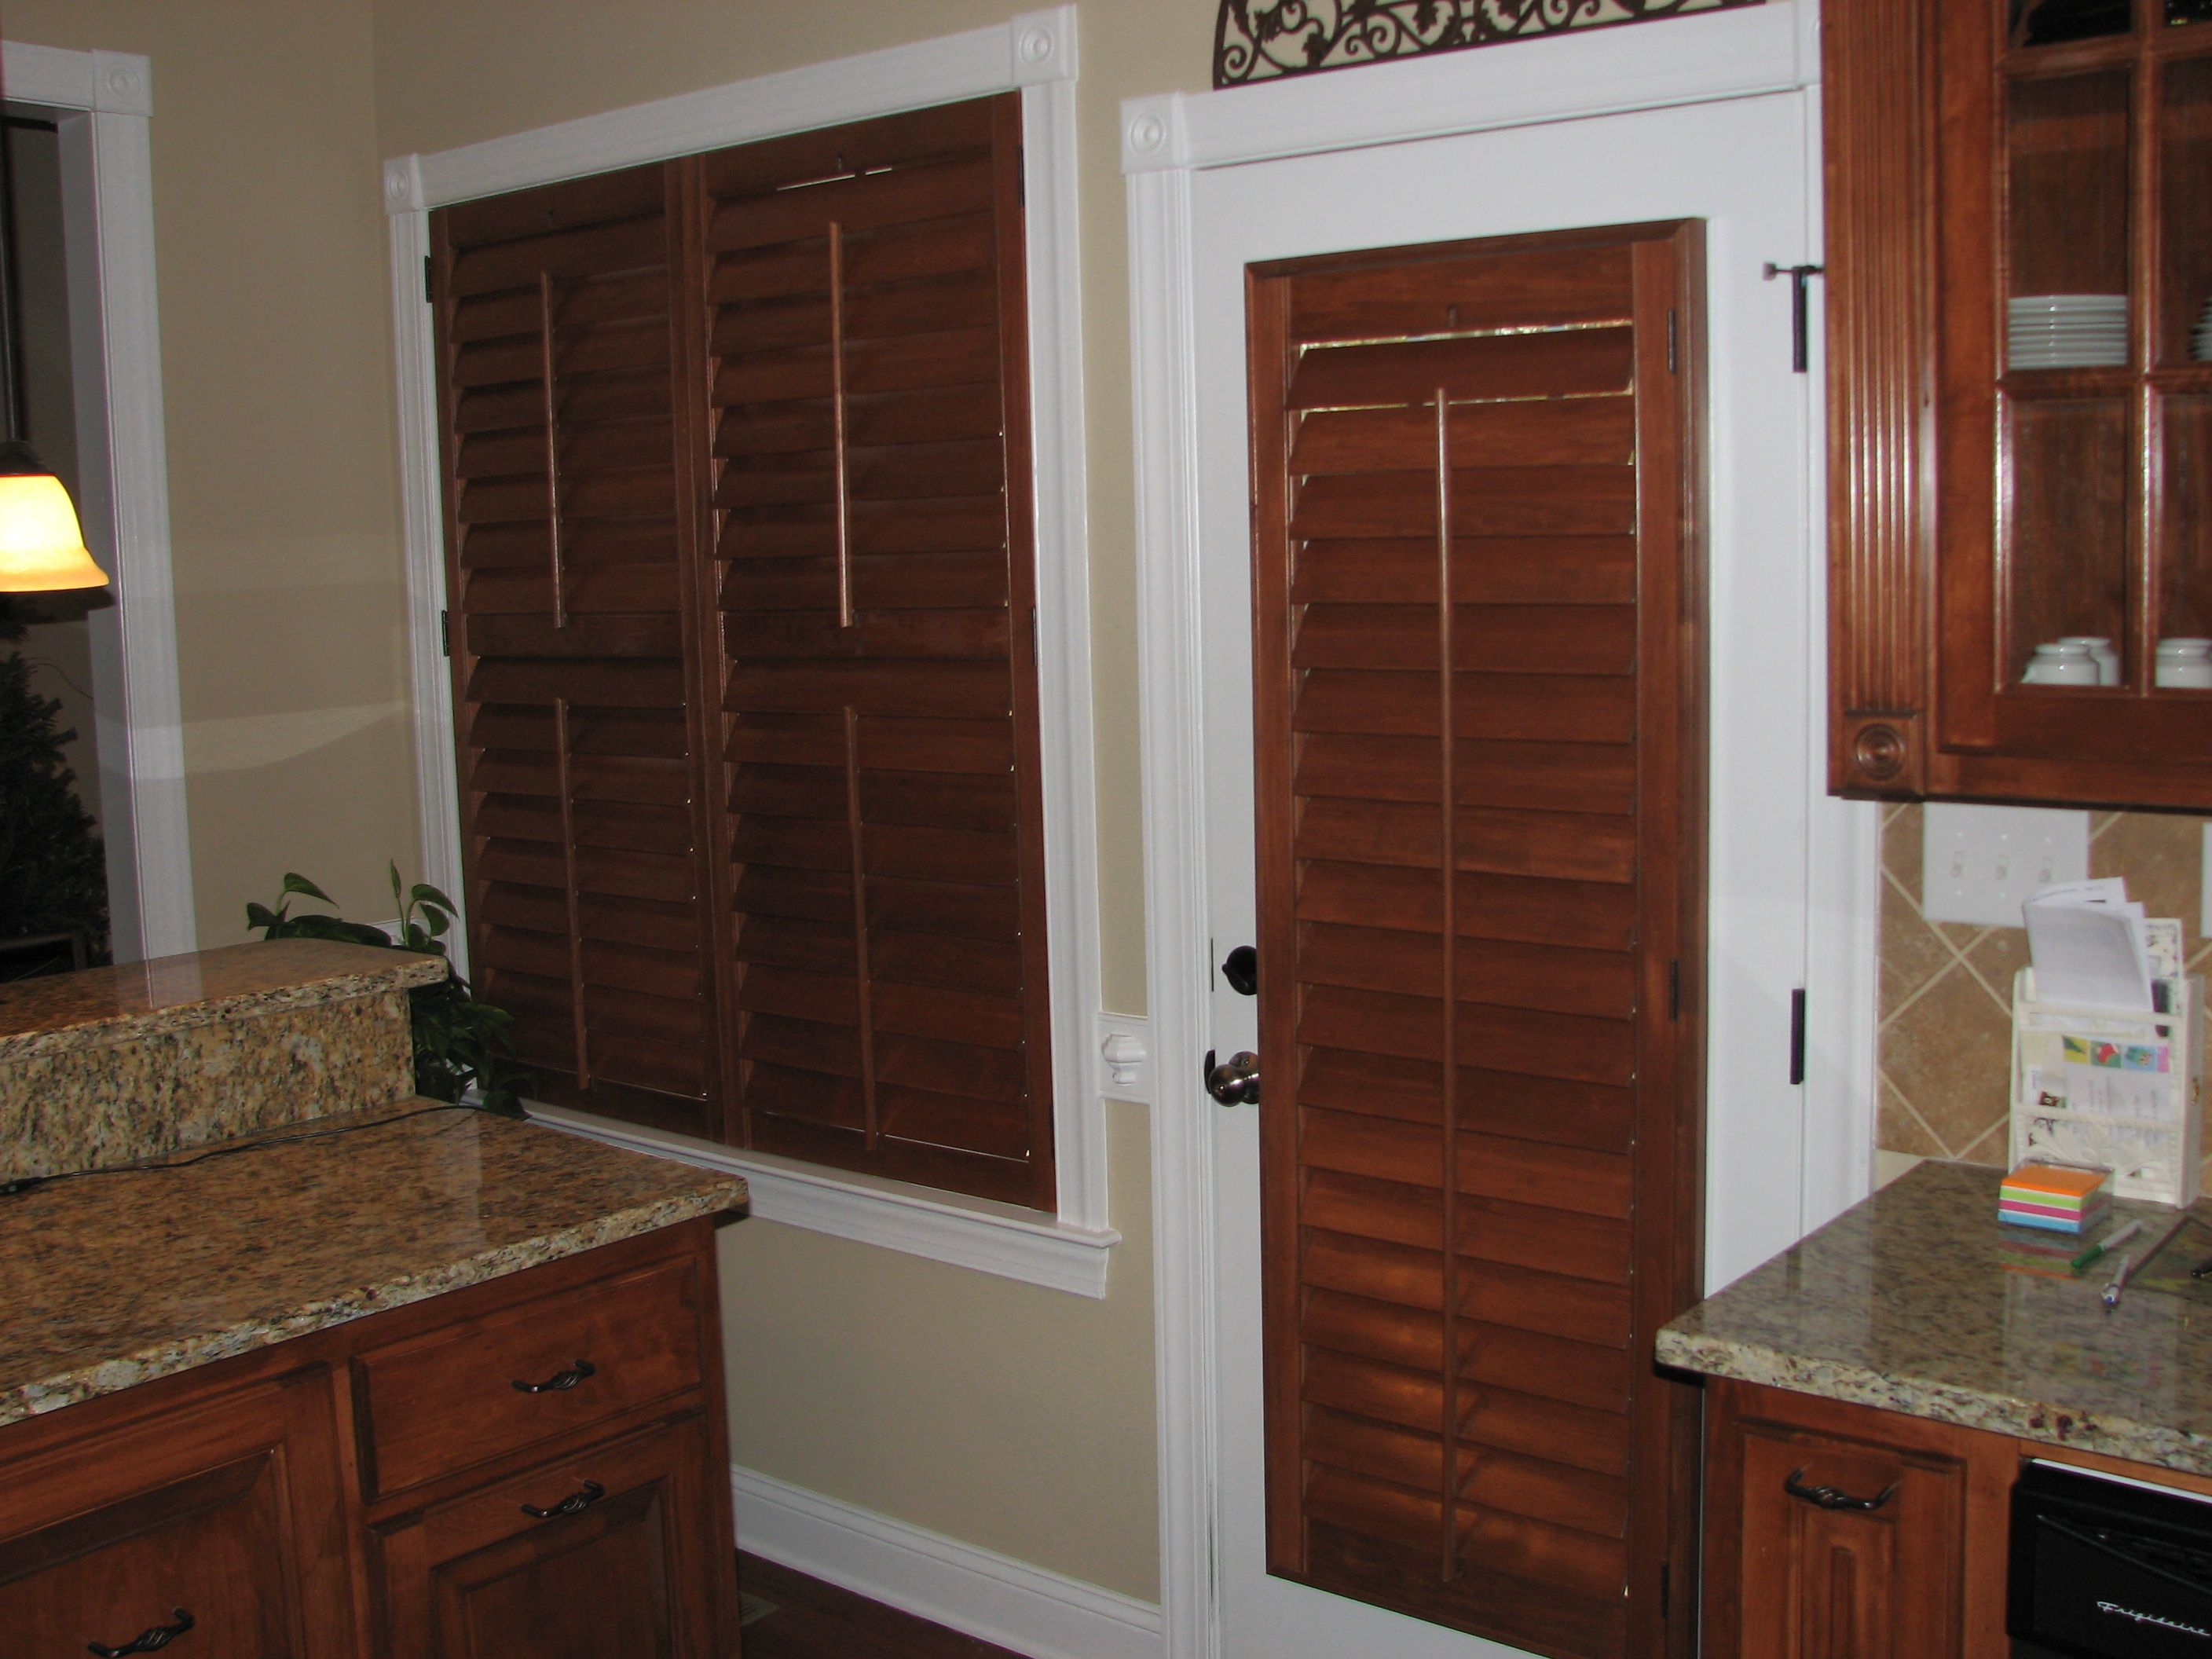 english chestnut stained plantation shutters provide a nice